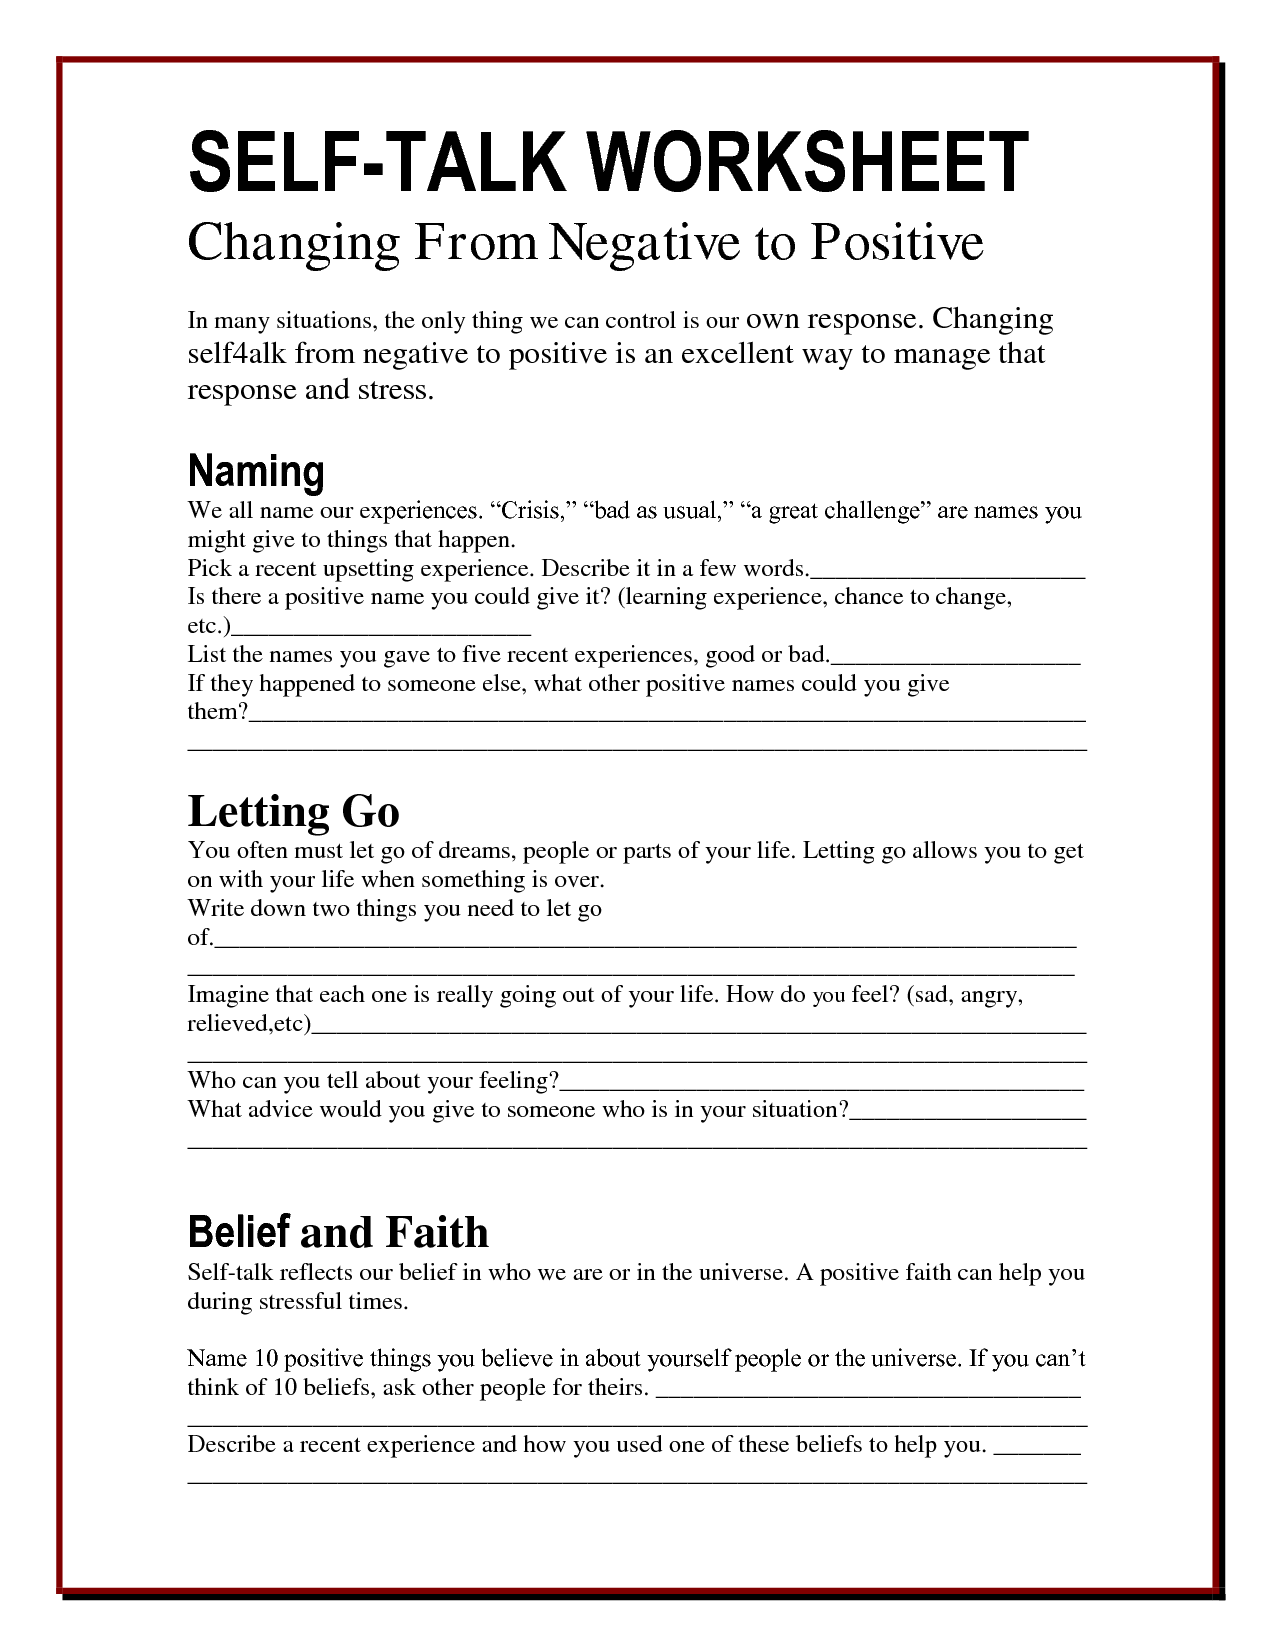 worksheet Ocd Worksheets for more tips to better manage the anxiety in your life visit self talk worksheet changing positives negatives